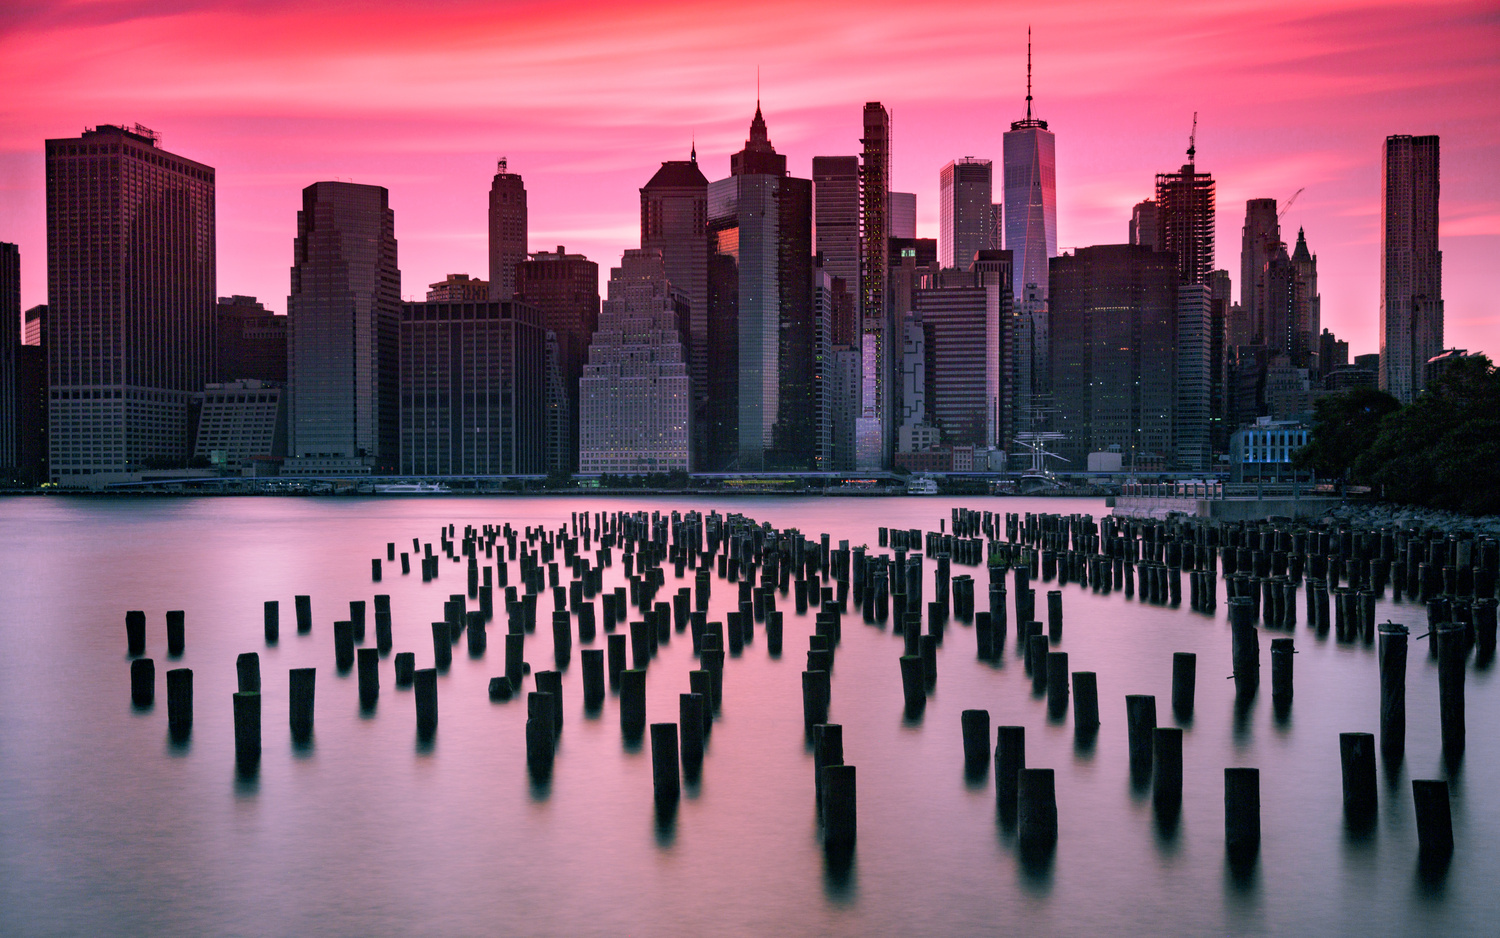 Evening in Manhattan by Viren Nathan